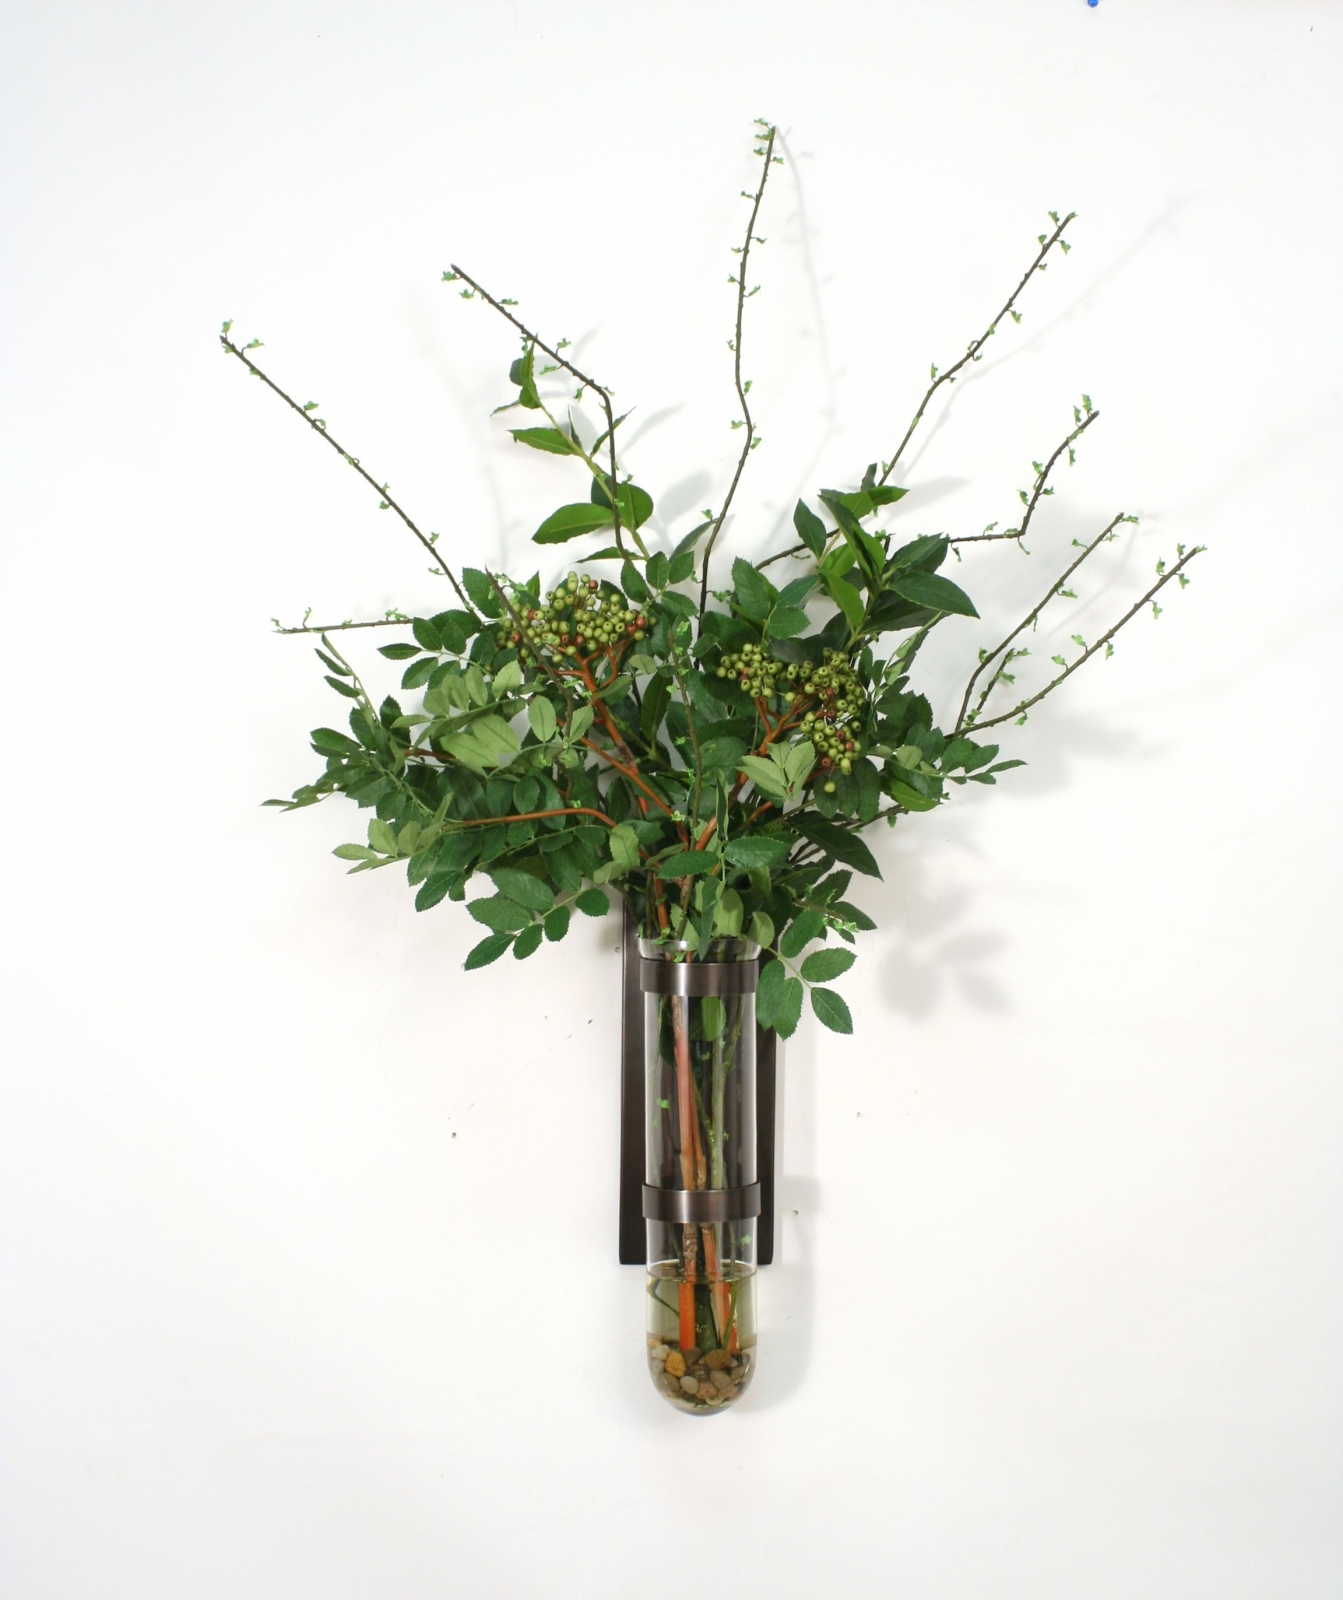 Waterlook® Mixed Greenery and Berries in Large Test Tube with Bronze Wall Base